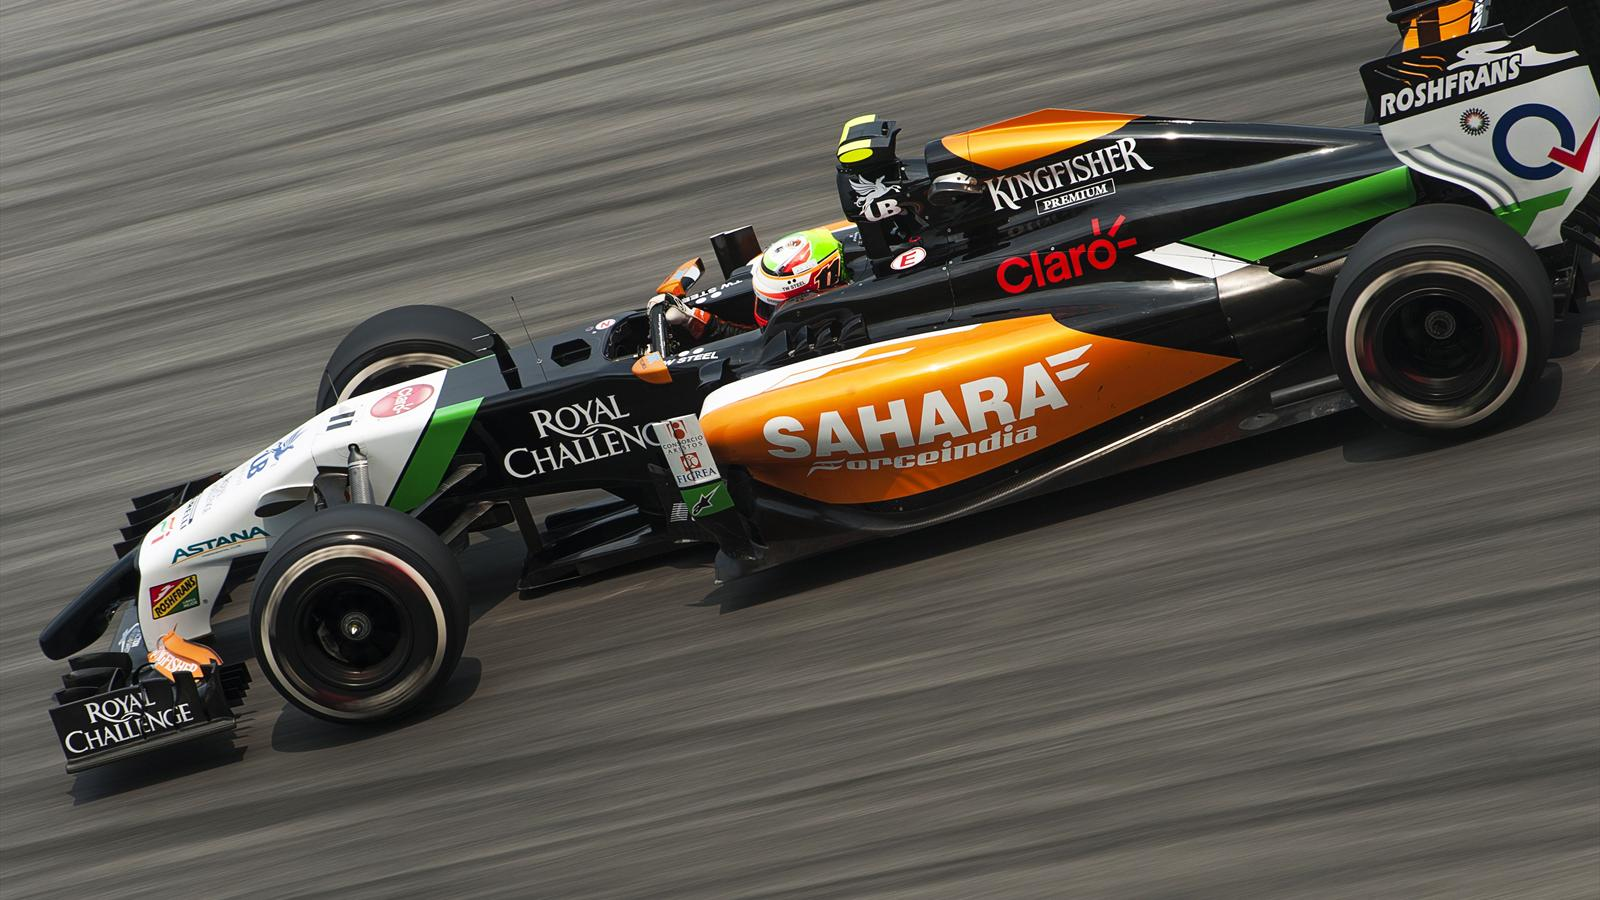 2014 GP of Malaysia Force India Pérez